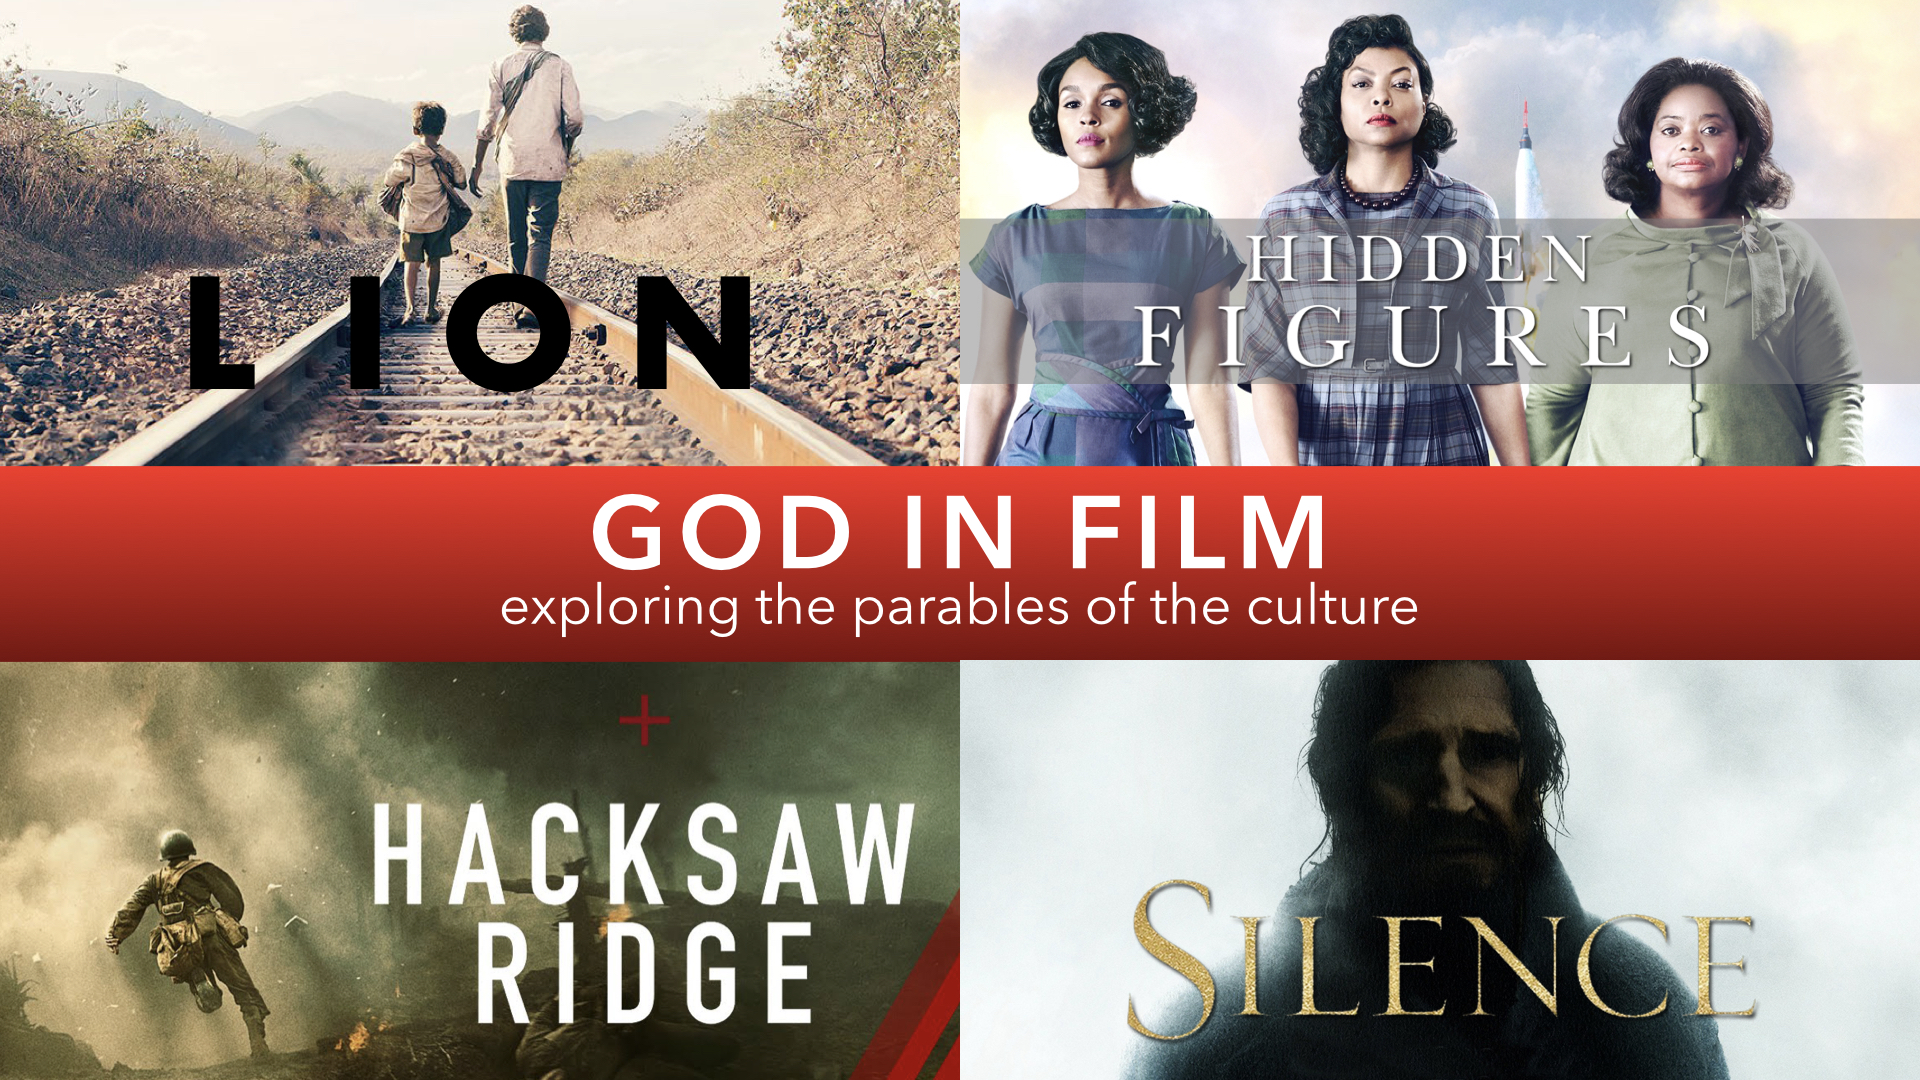 GOD IN FILM 2017 | SERIES - LION: OUR JOURNEY HOME | 8.6.2017 | WATCHHIDDEN FIGURES: EVERYONE (INCLUDING WOMEN) GETS TO PLAY | 8.13.2017 | WATCHHACKSAW RIDGE: IN THE WORLD BUT NOT OF IT | 8.20.2017 | WATCHSILENCE: FAITH WHEN GOD DOESN'T ANSWER | 8.27.2017 | WATCH